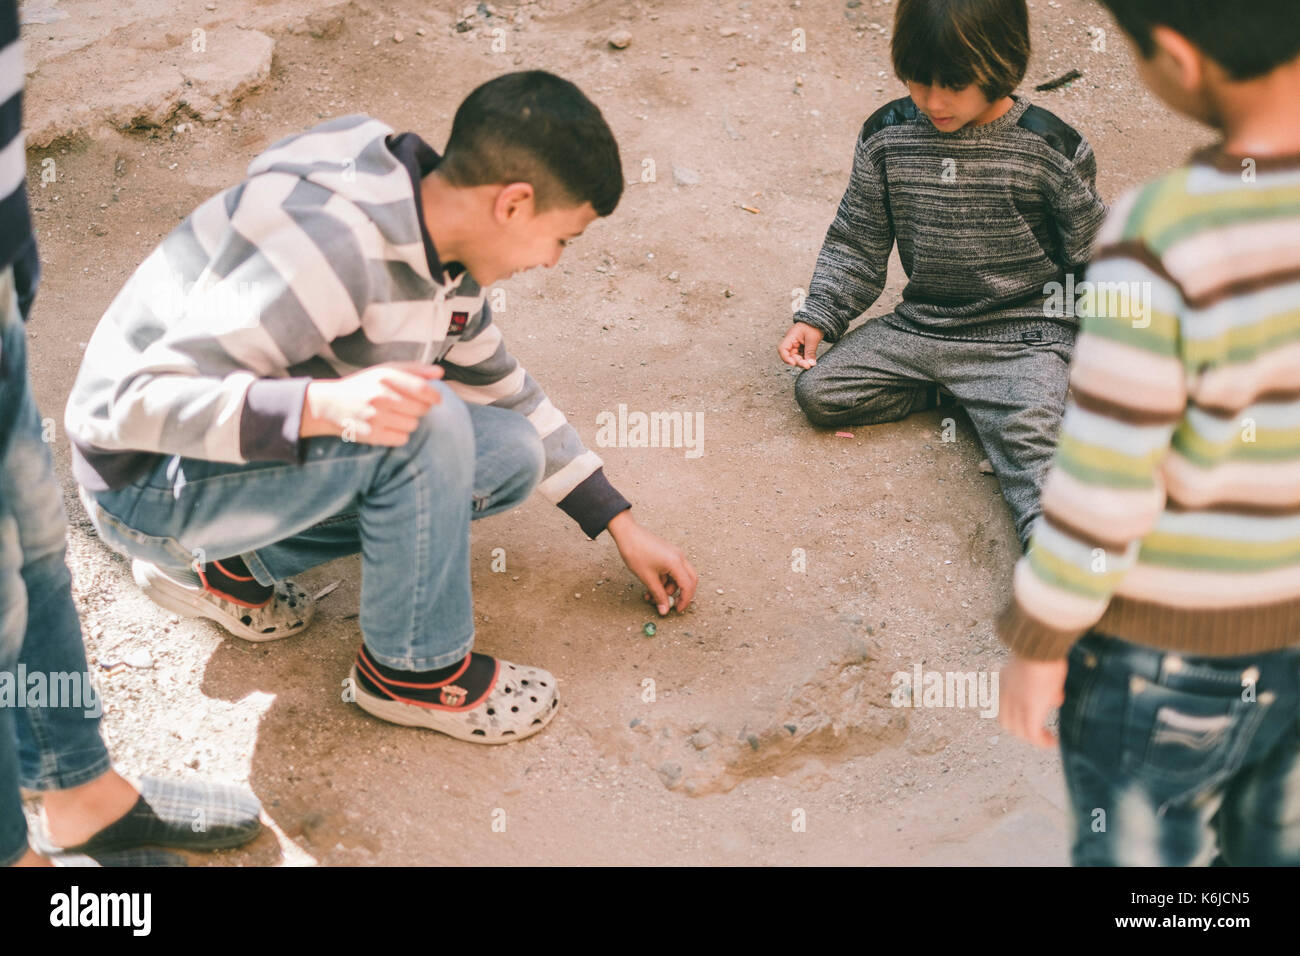 Westerner boy playing marbles in street with Moroccan kids, Marrakesh, Morocco - Stock Image